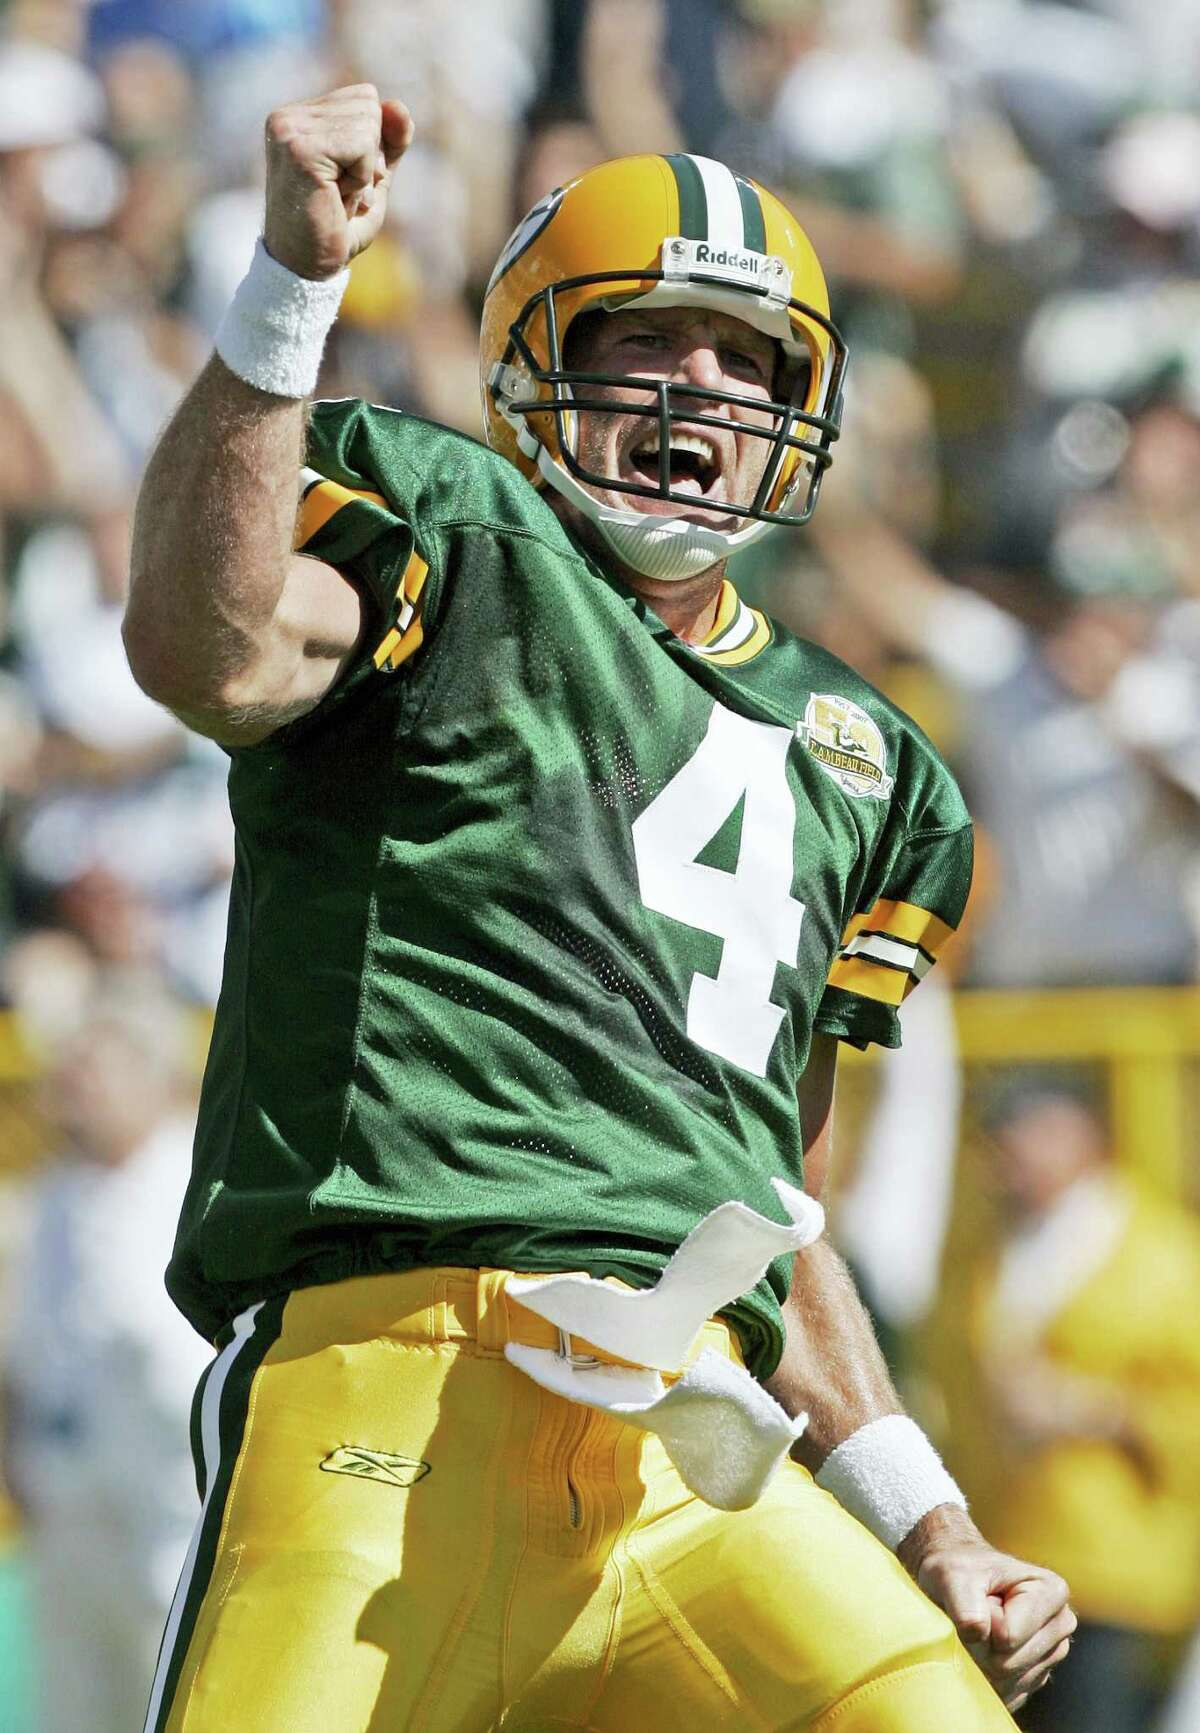 Quarterback Brett Favre was elected to the Pro Football Hall of Fame on Saturday.